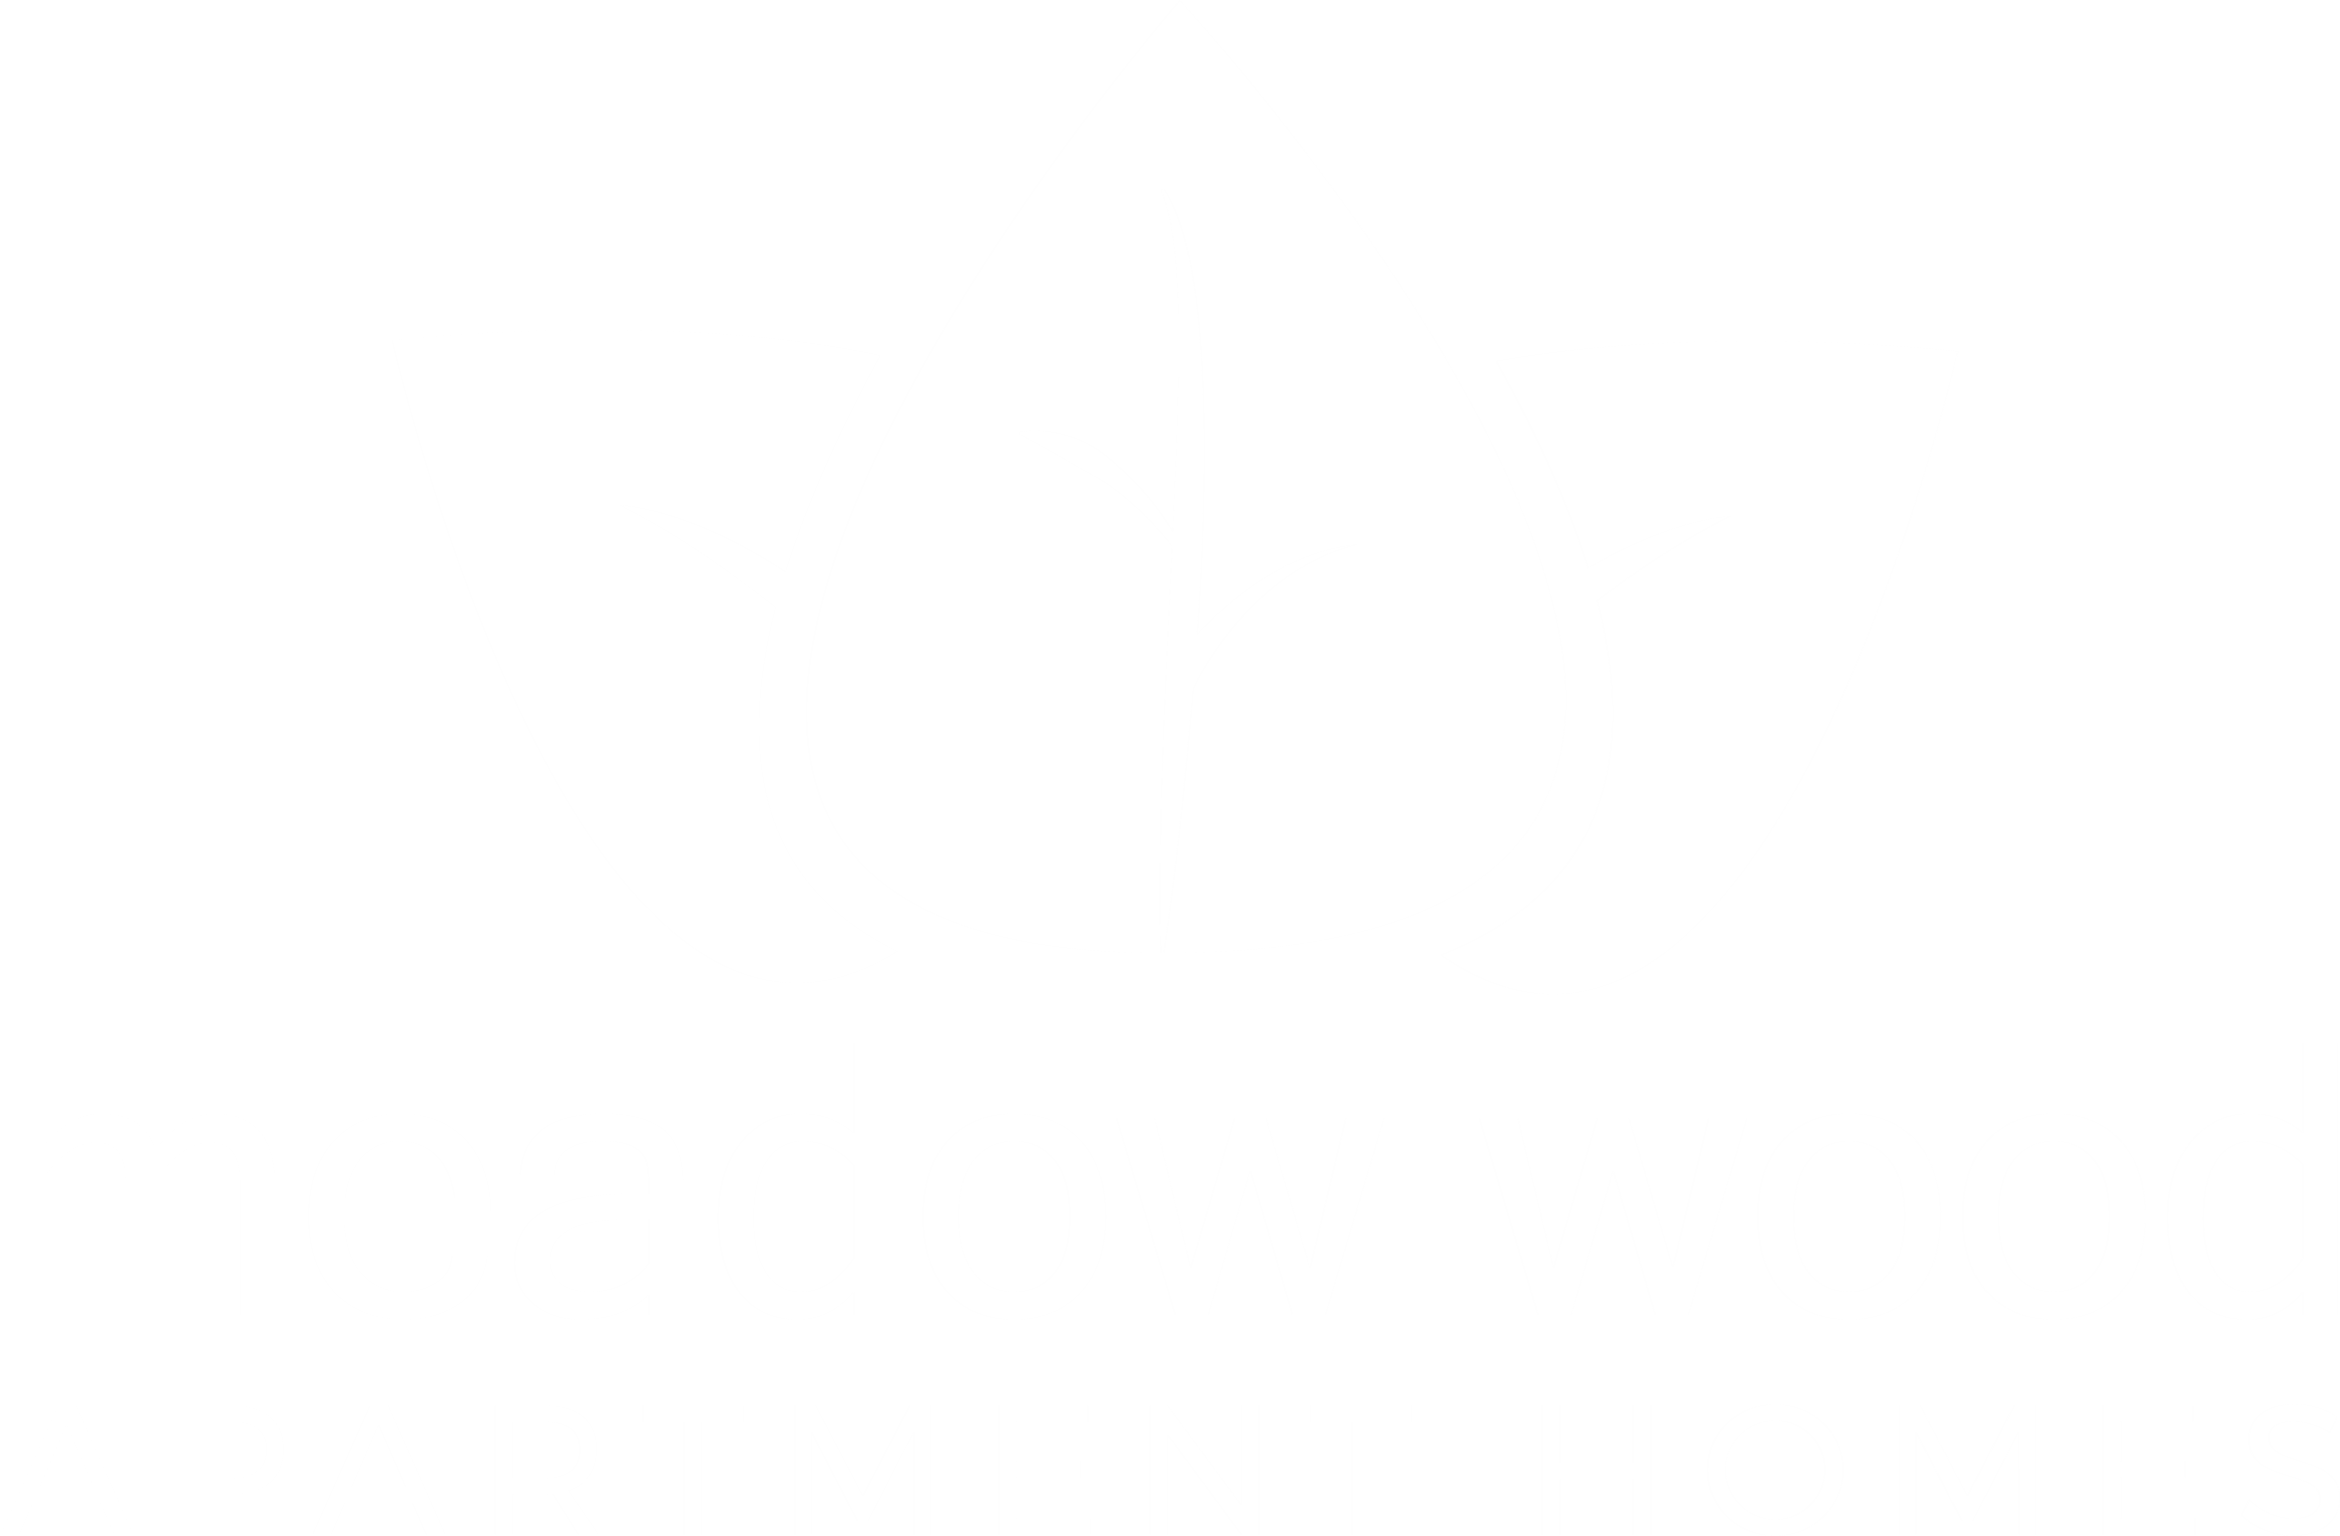 Meadow Wood Apartment Homes Property Logo 7